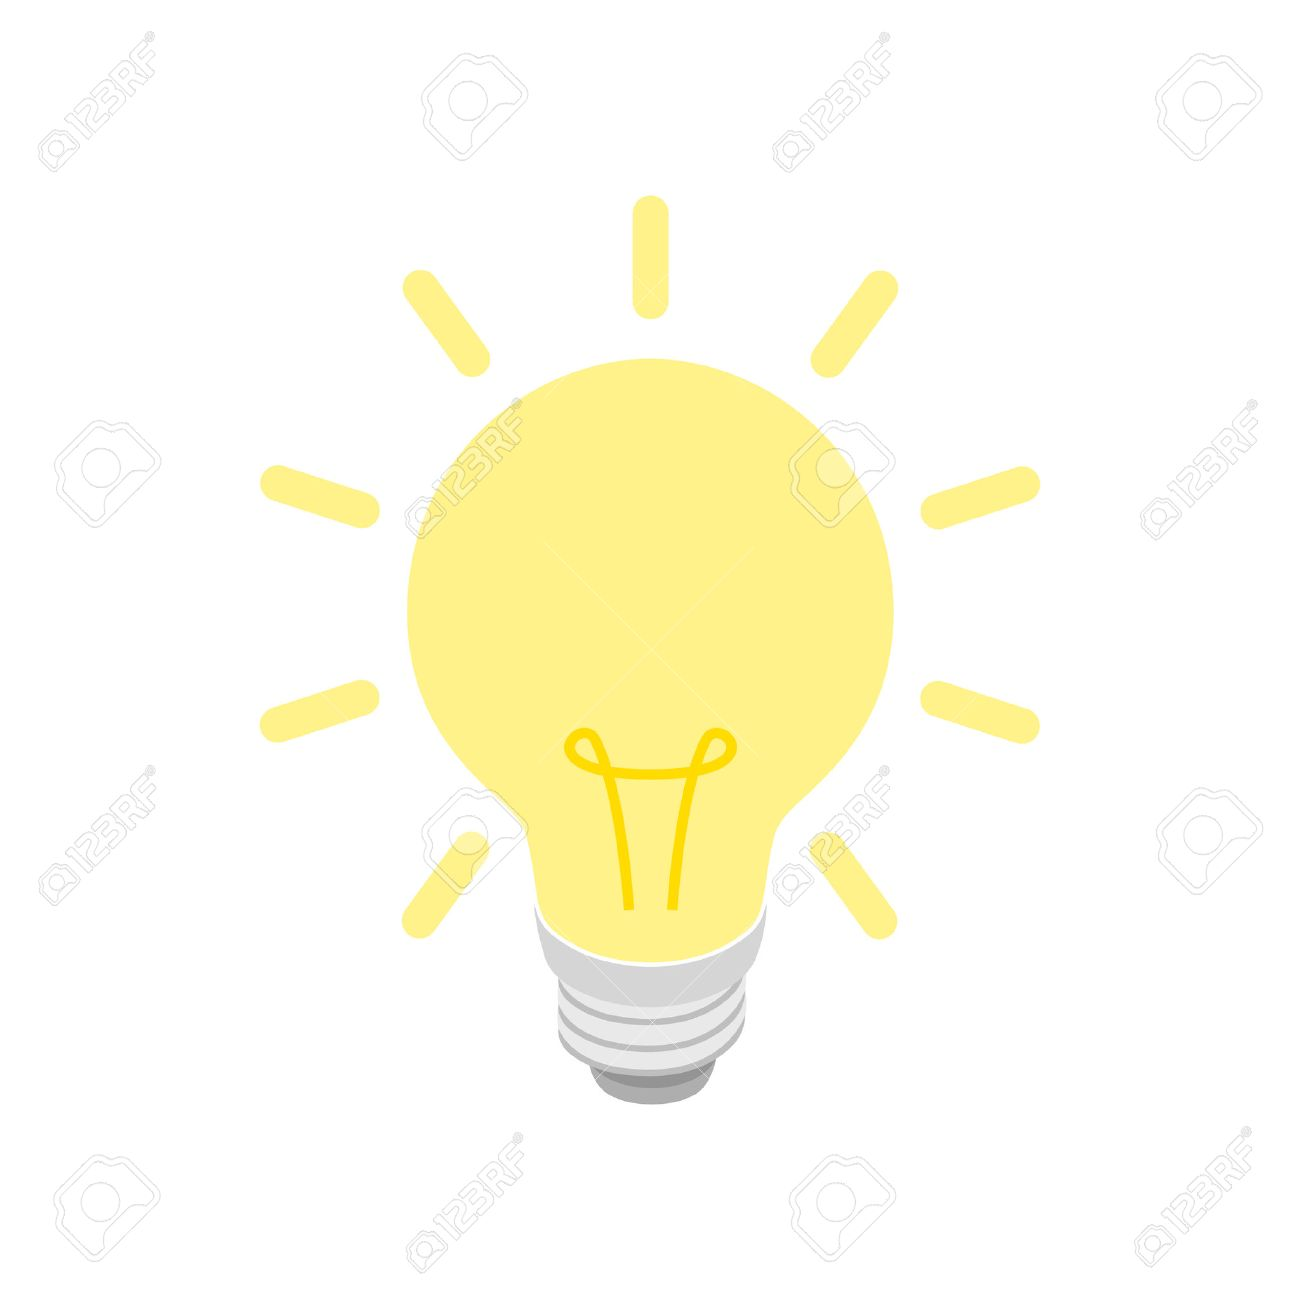 Glowing yellow light bulb icon in isometric 3d style on a white background - 53349790